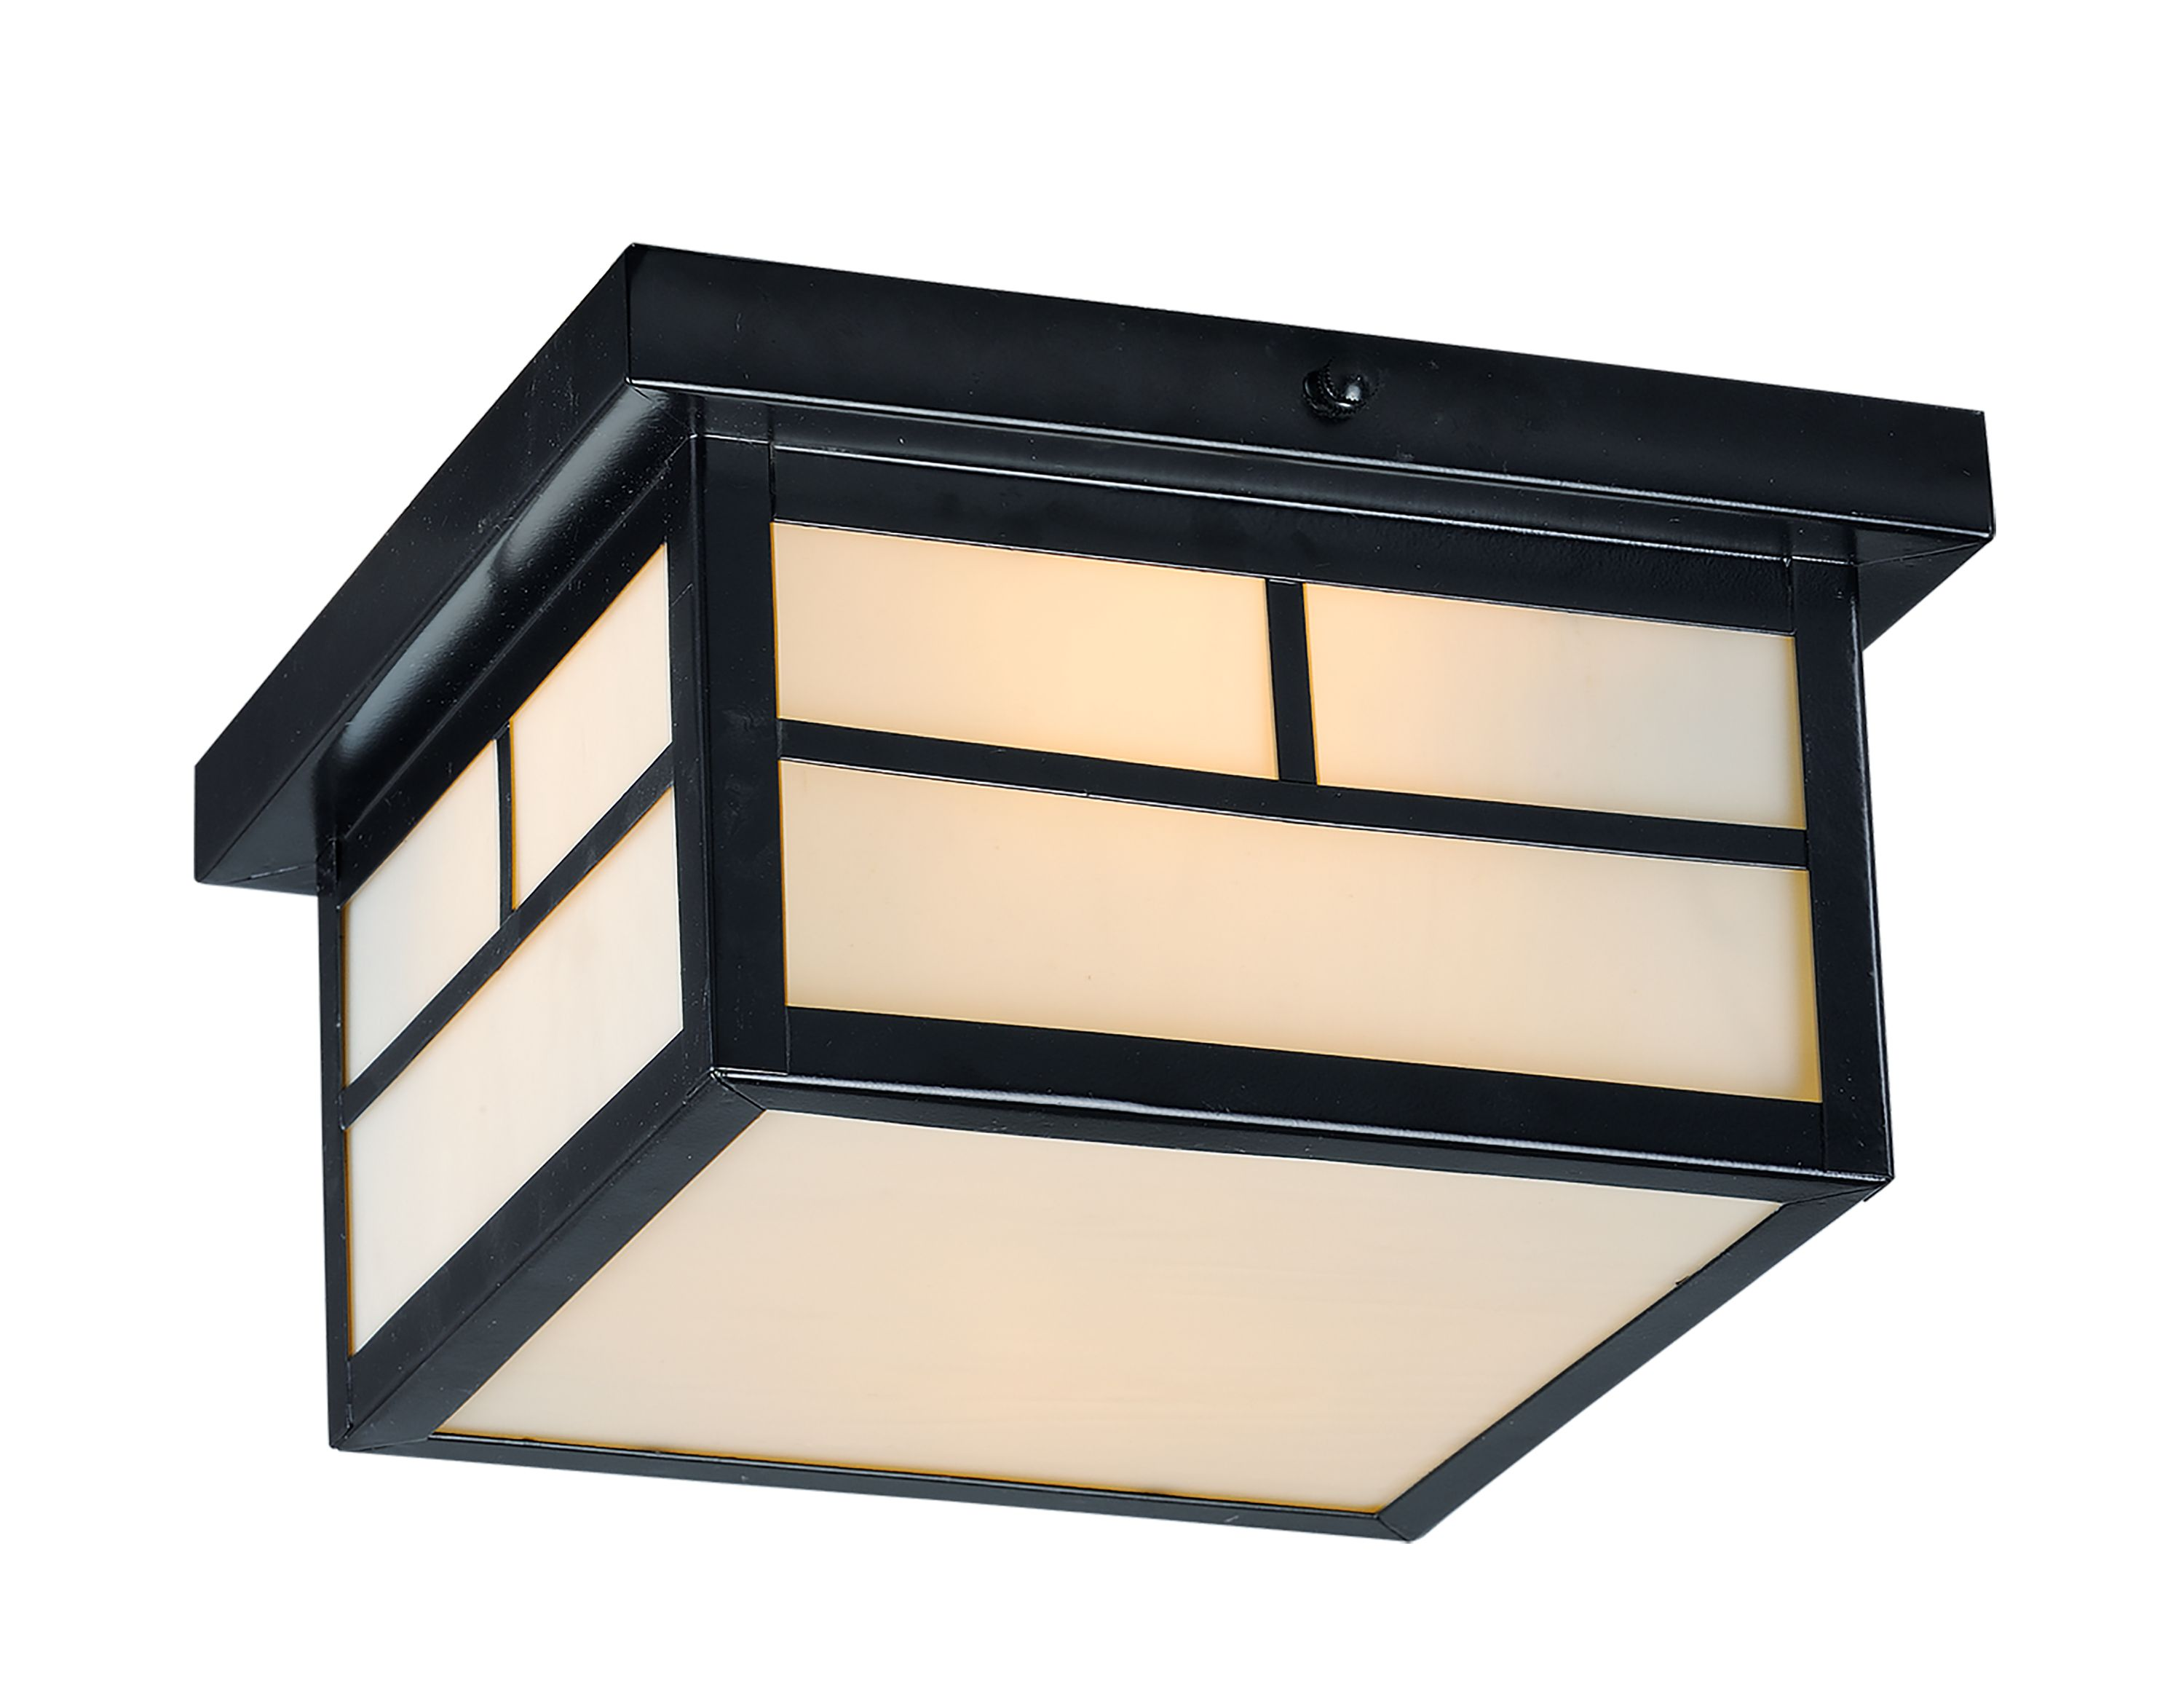 Coldwater White Outdoor Ceiling Light Fixture By Maxim Lighting 4059wtbk Outdoor Ceiling Lights Outdoor Flush Mounts Flush Mount Lighting